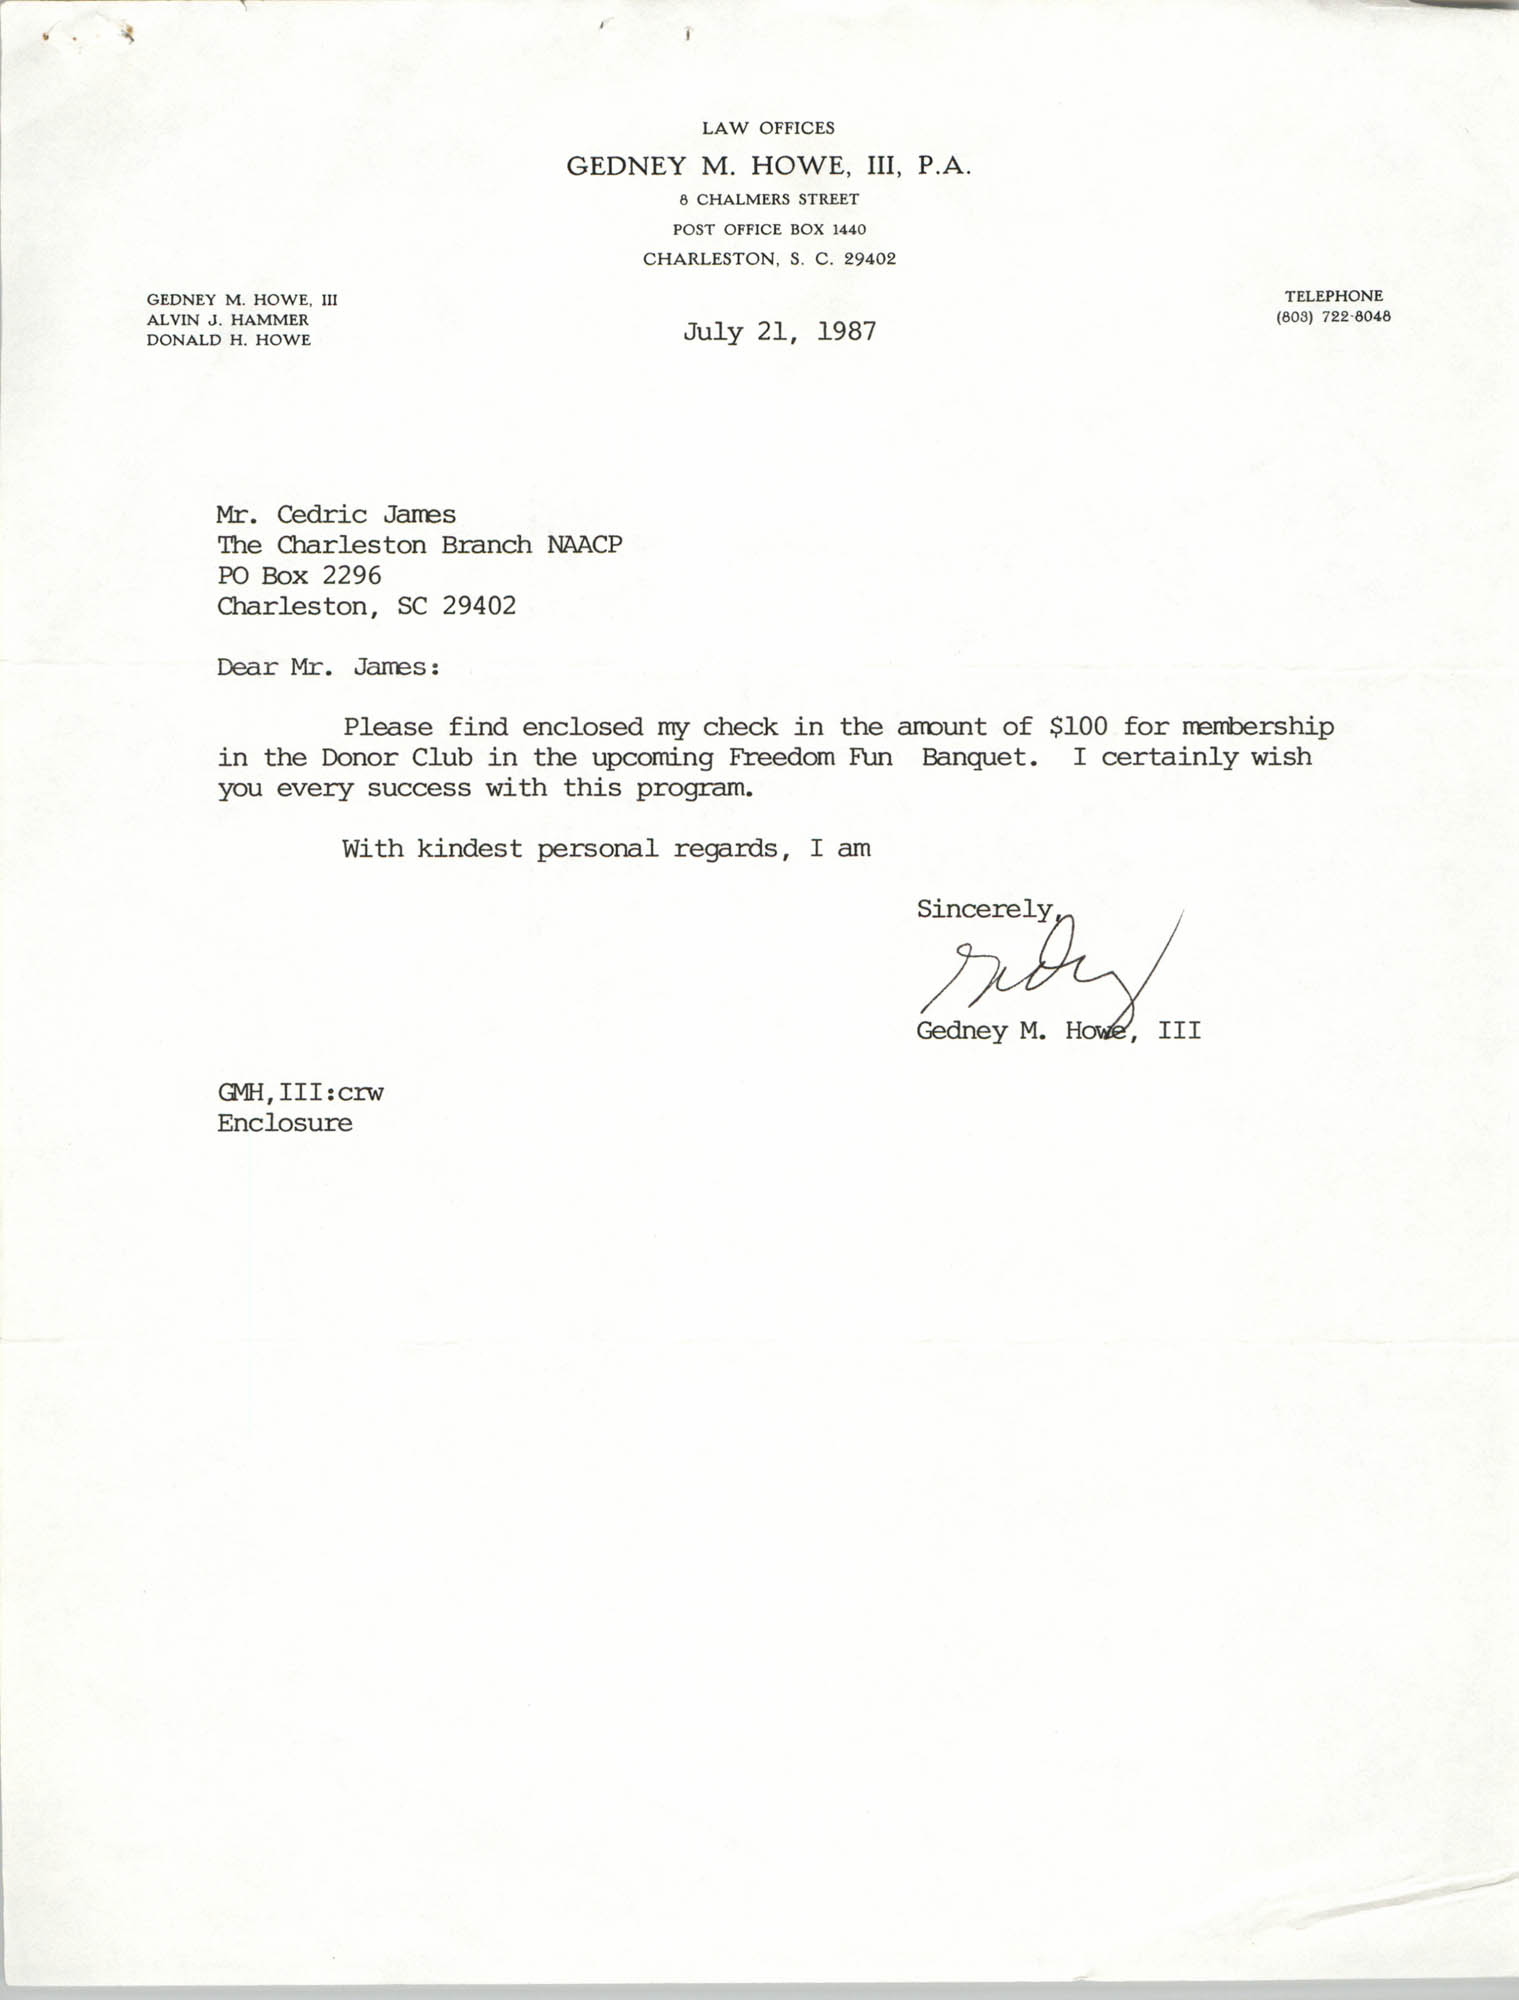 Letter from Gedney M. Howe, III to Cedric James, July 21, 1987